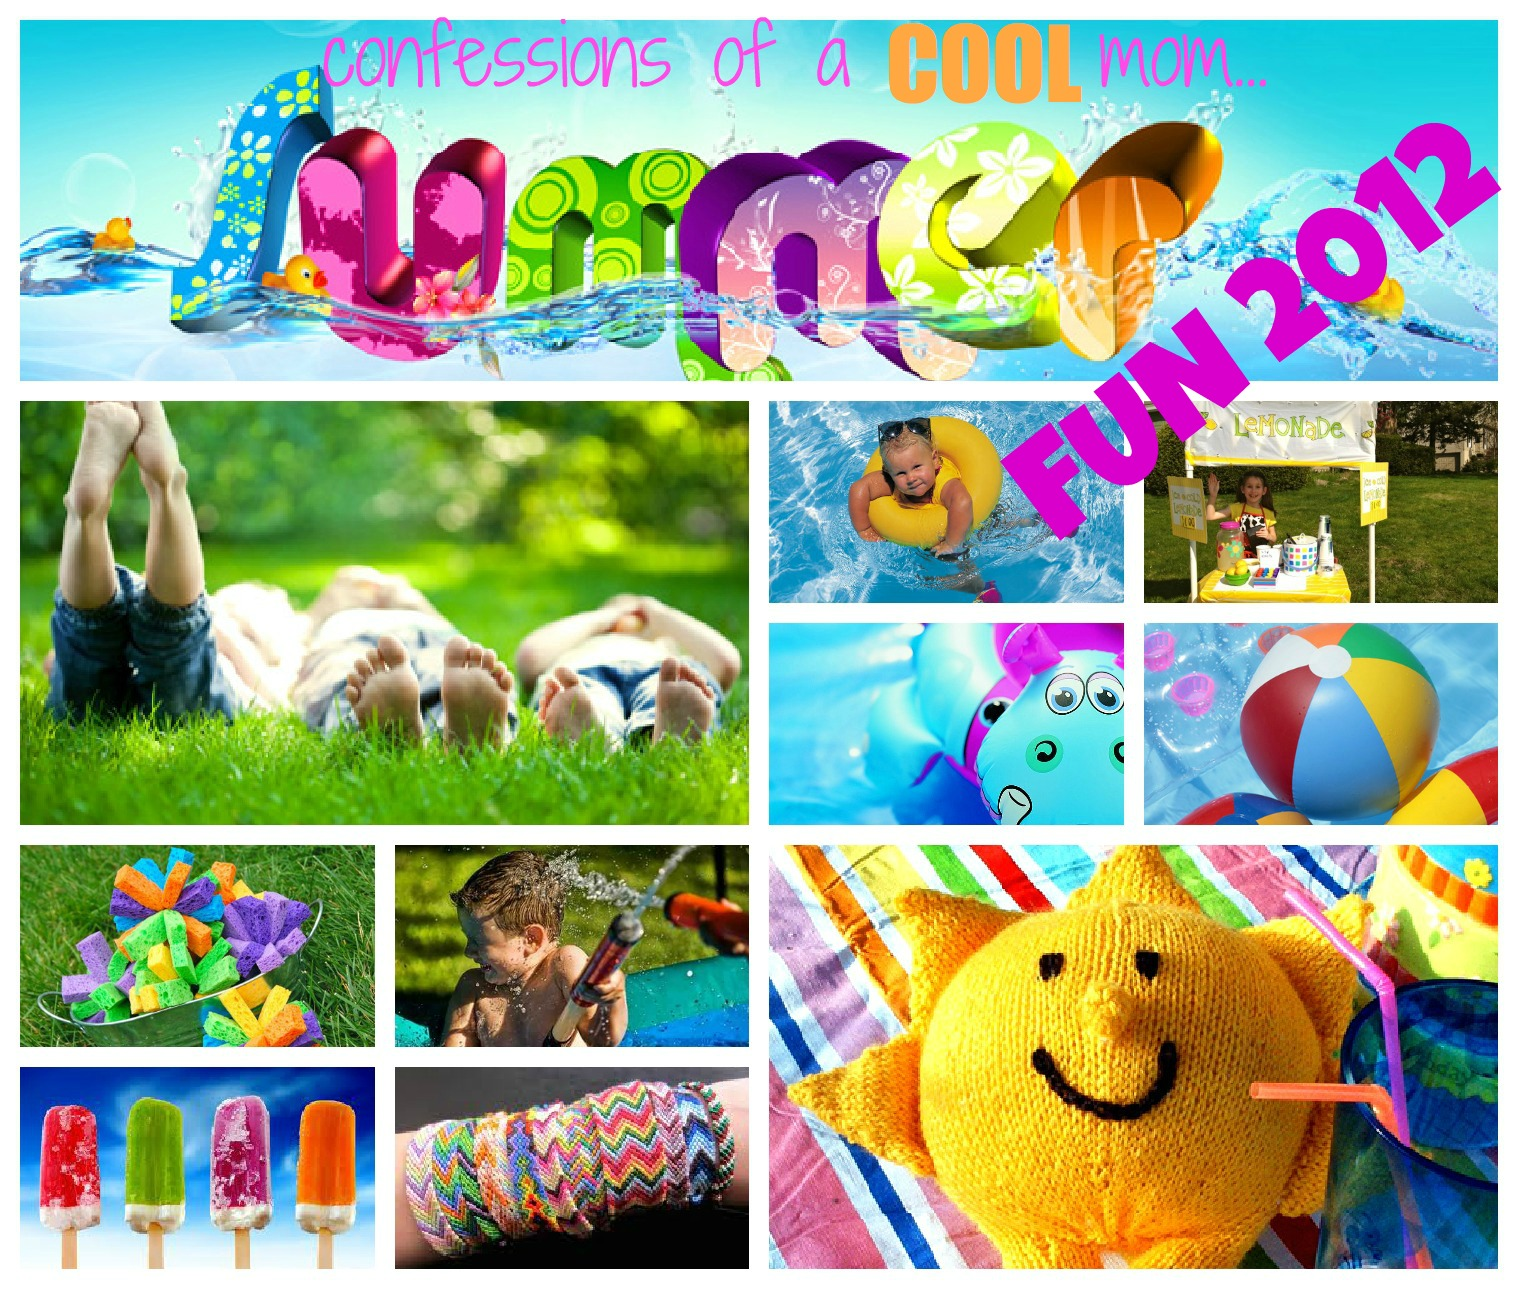 ... : Cool Summer Treats and Cool Stuff to Do in the Heat of Summer